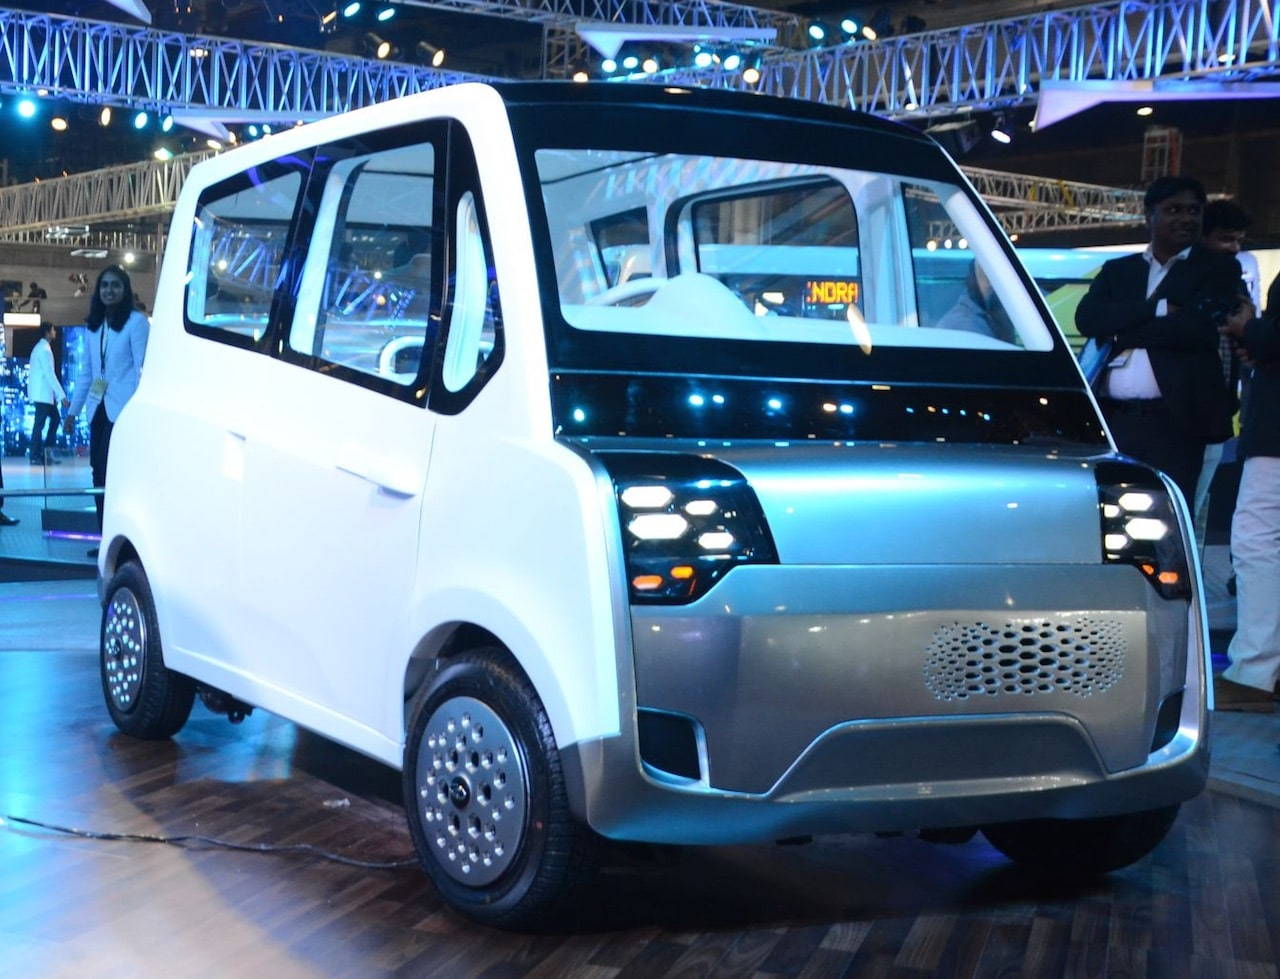 Mahindra ATOM electric quadricycle concept at Auto Expo 2018